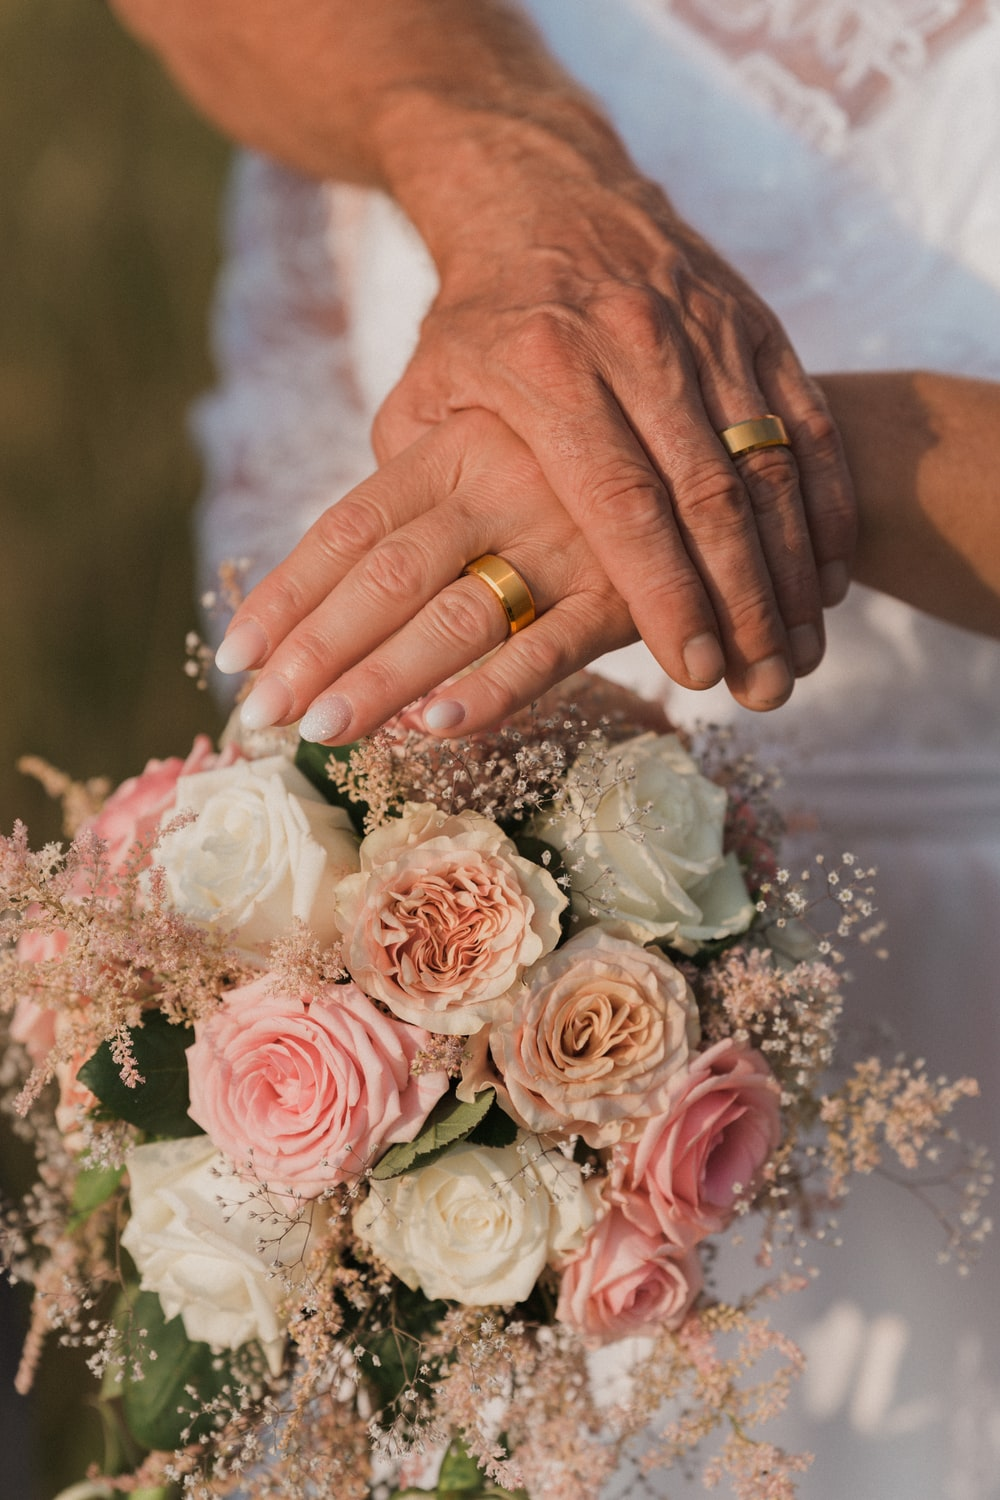 person holding bouquet of pink roses